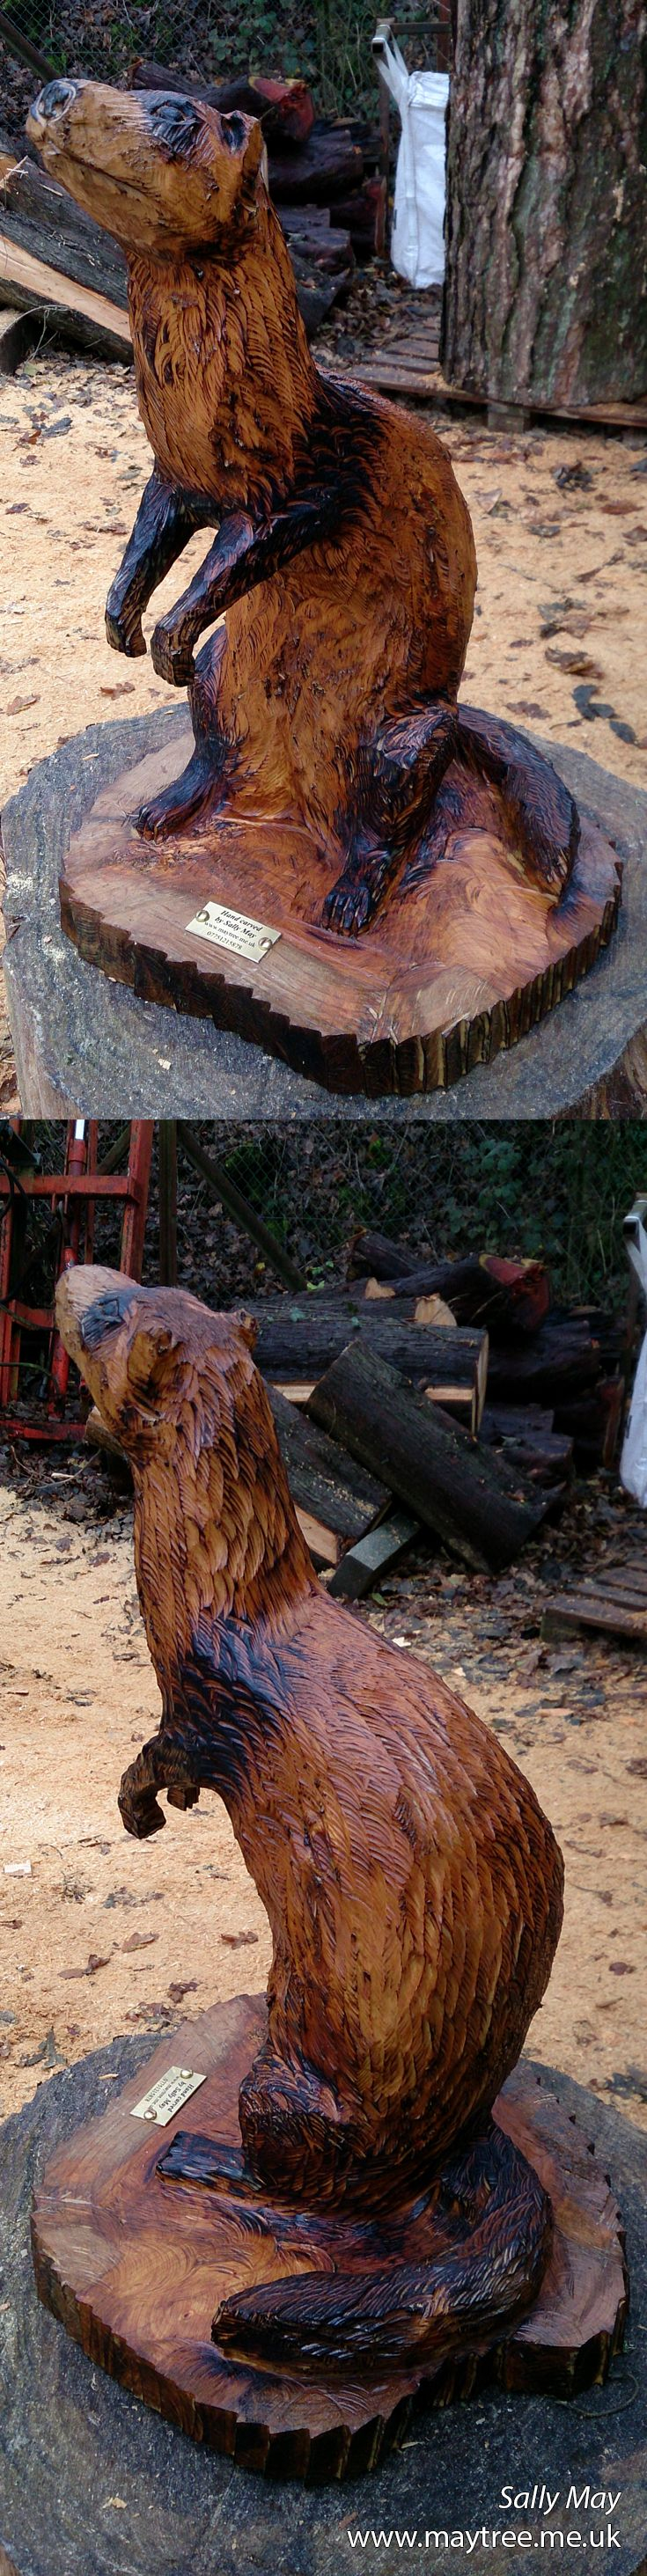 ferret chainsaw carving by sally may | kettensägenkunst, Gartengerate ideen